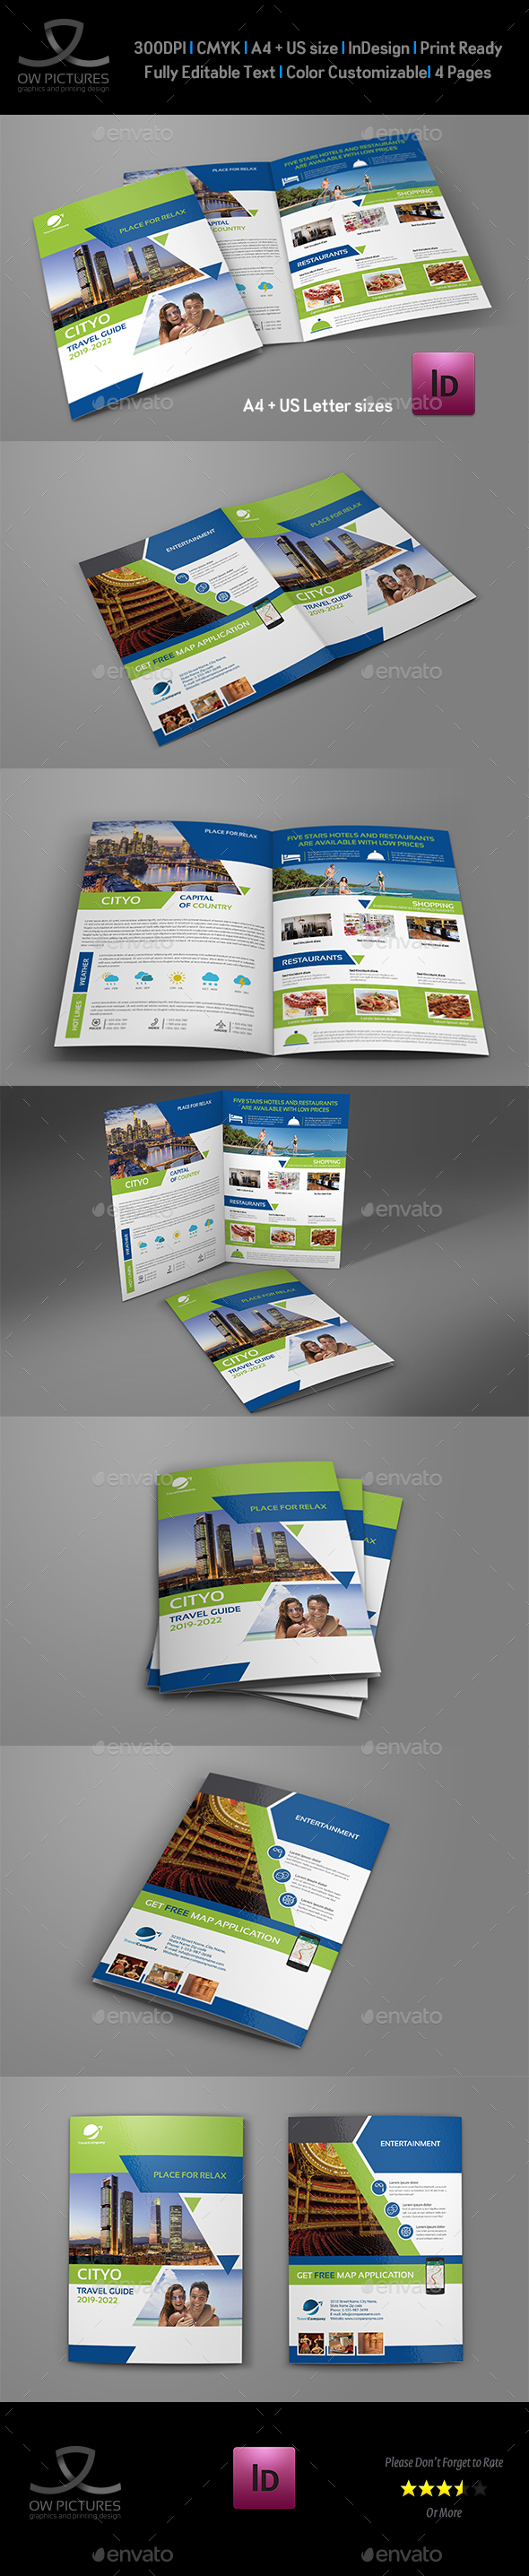 Travel Guide Bi-Fold Brochure Template - Brochures Print Templates